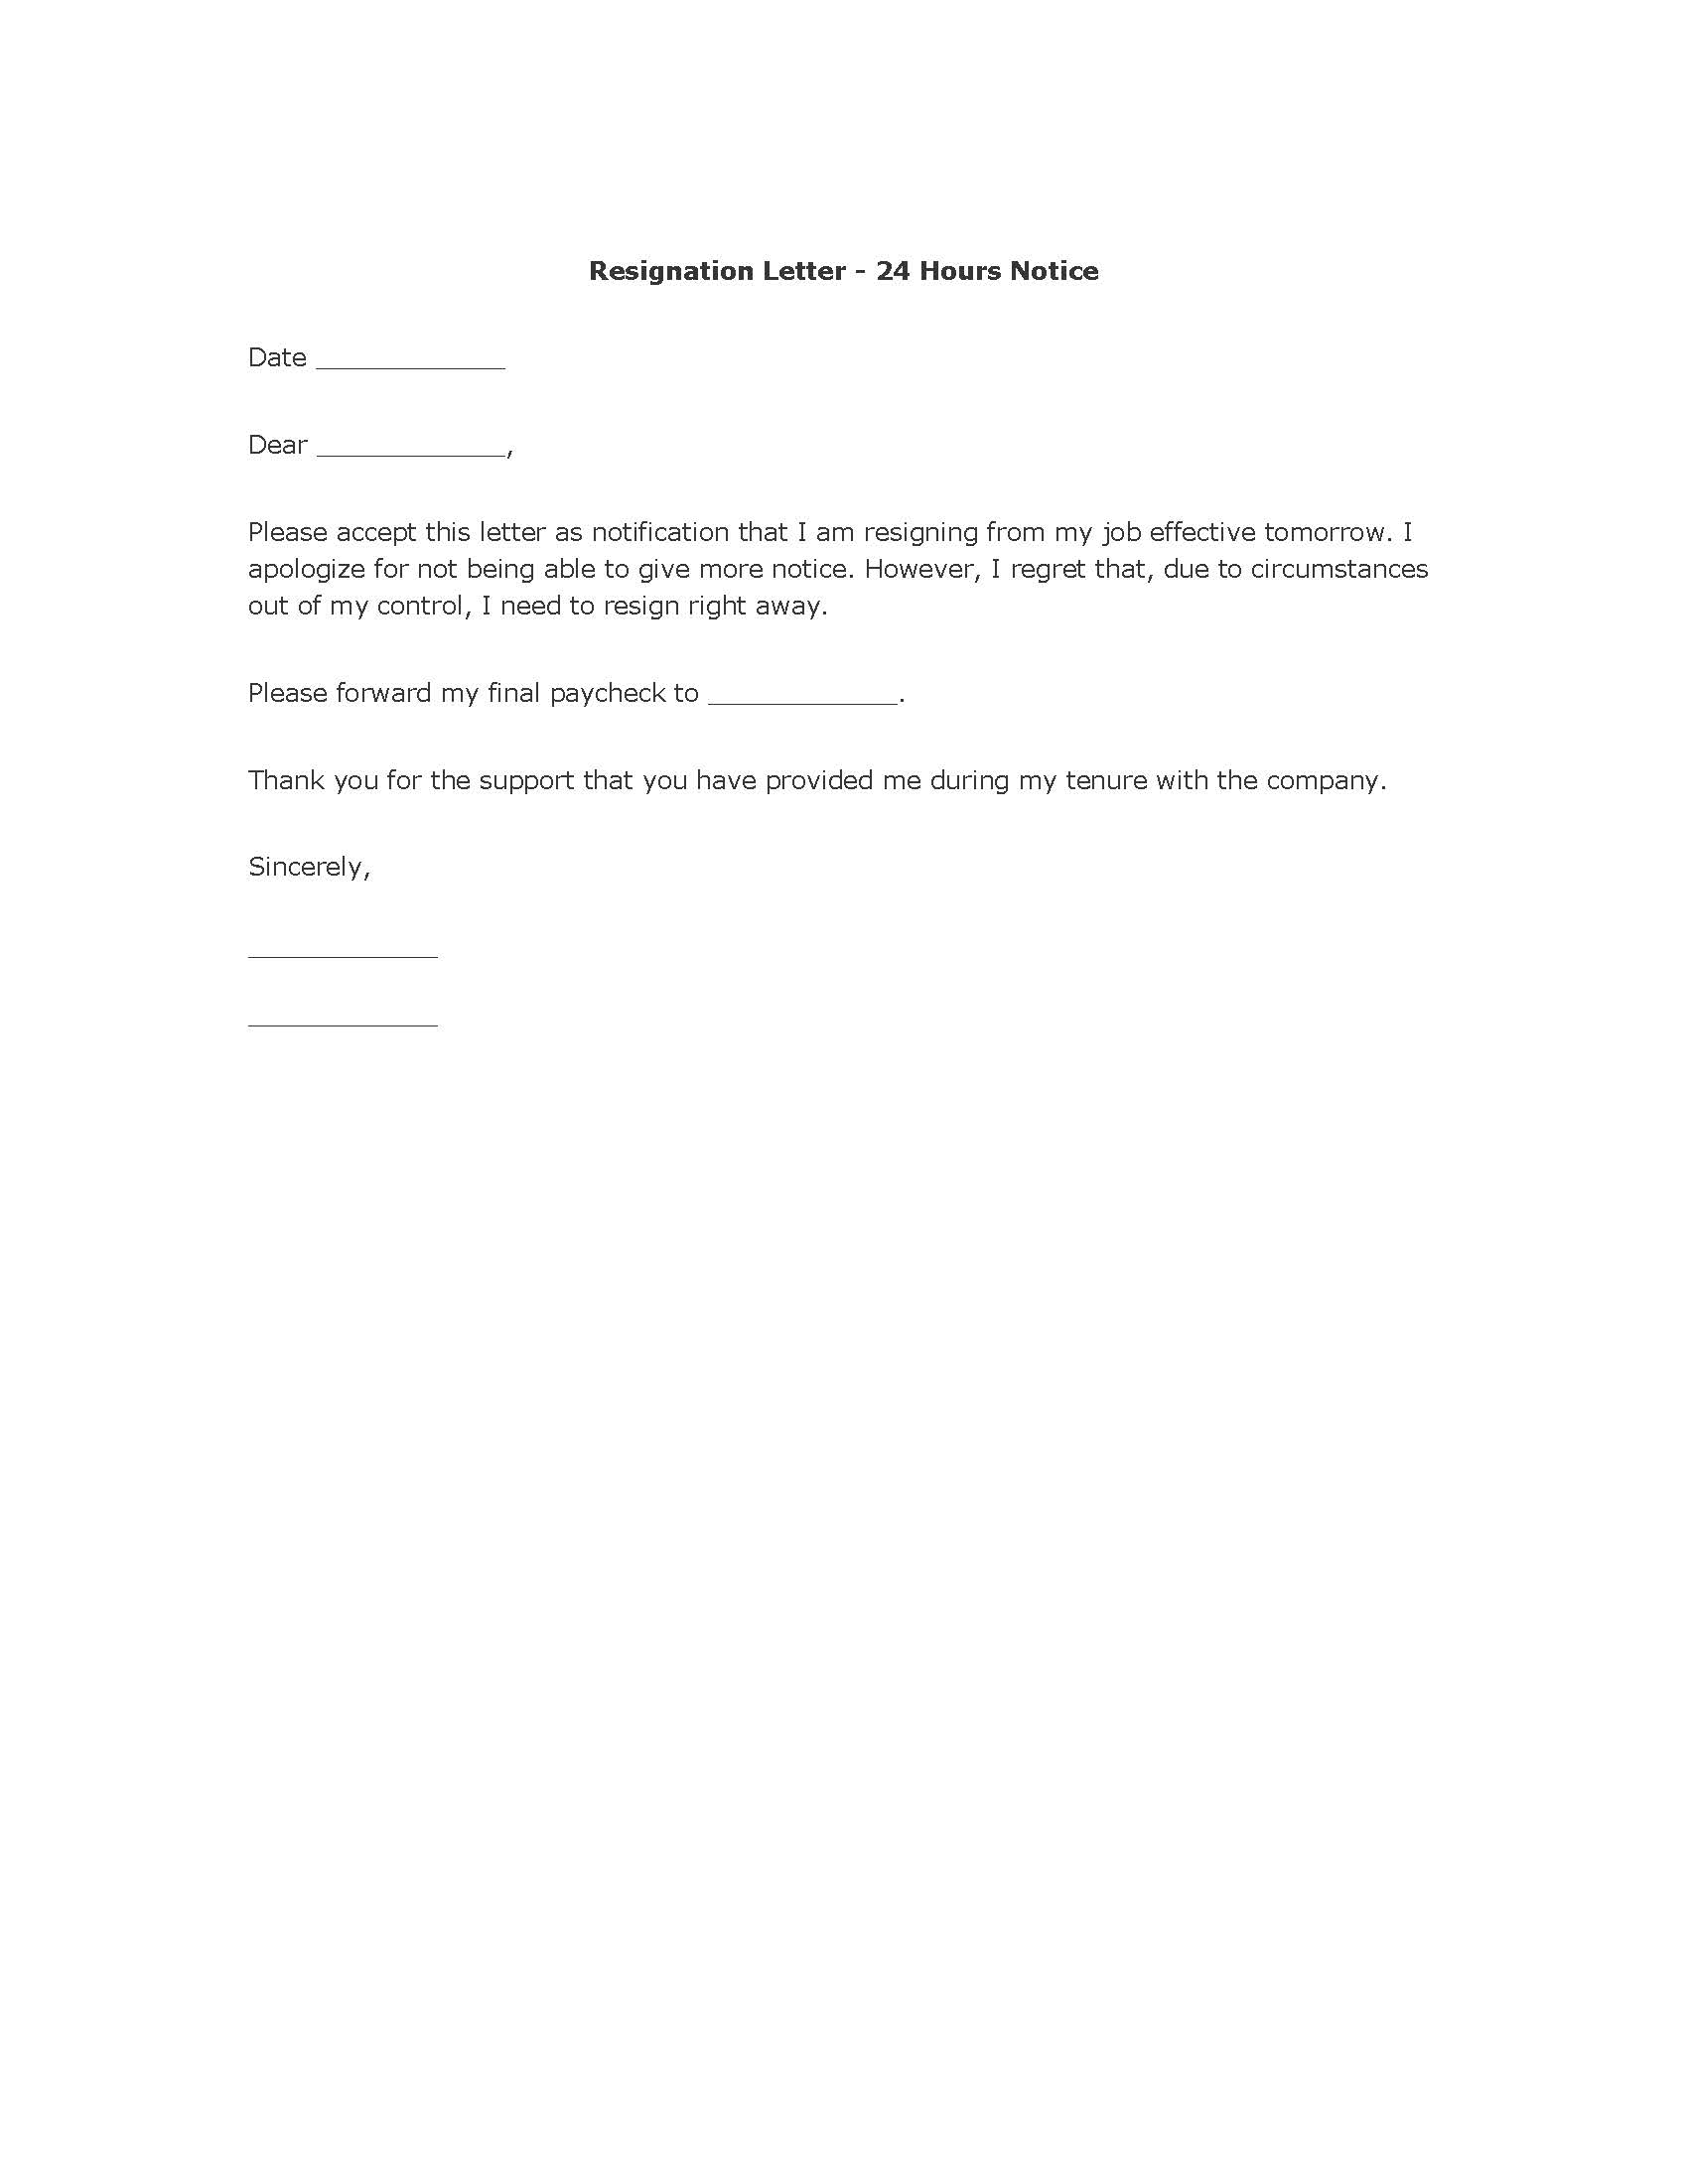 Resignation Letter Template Word – Resignation Format Word